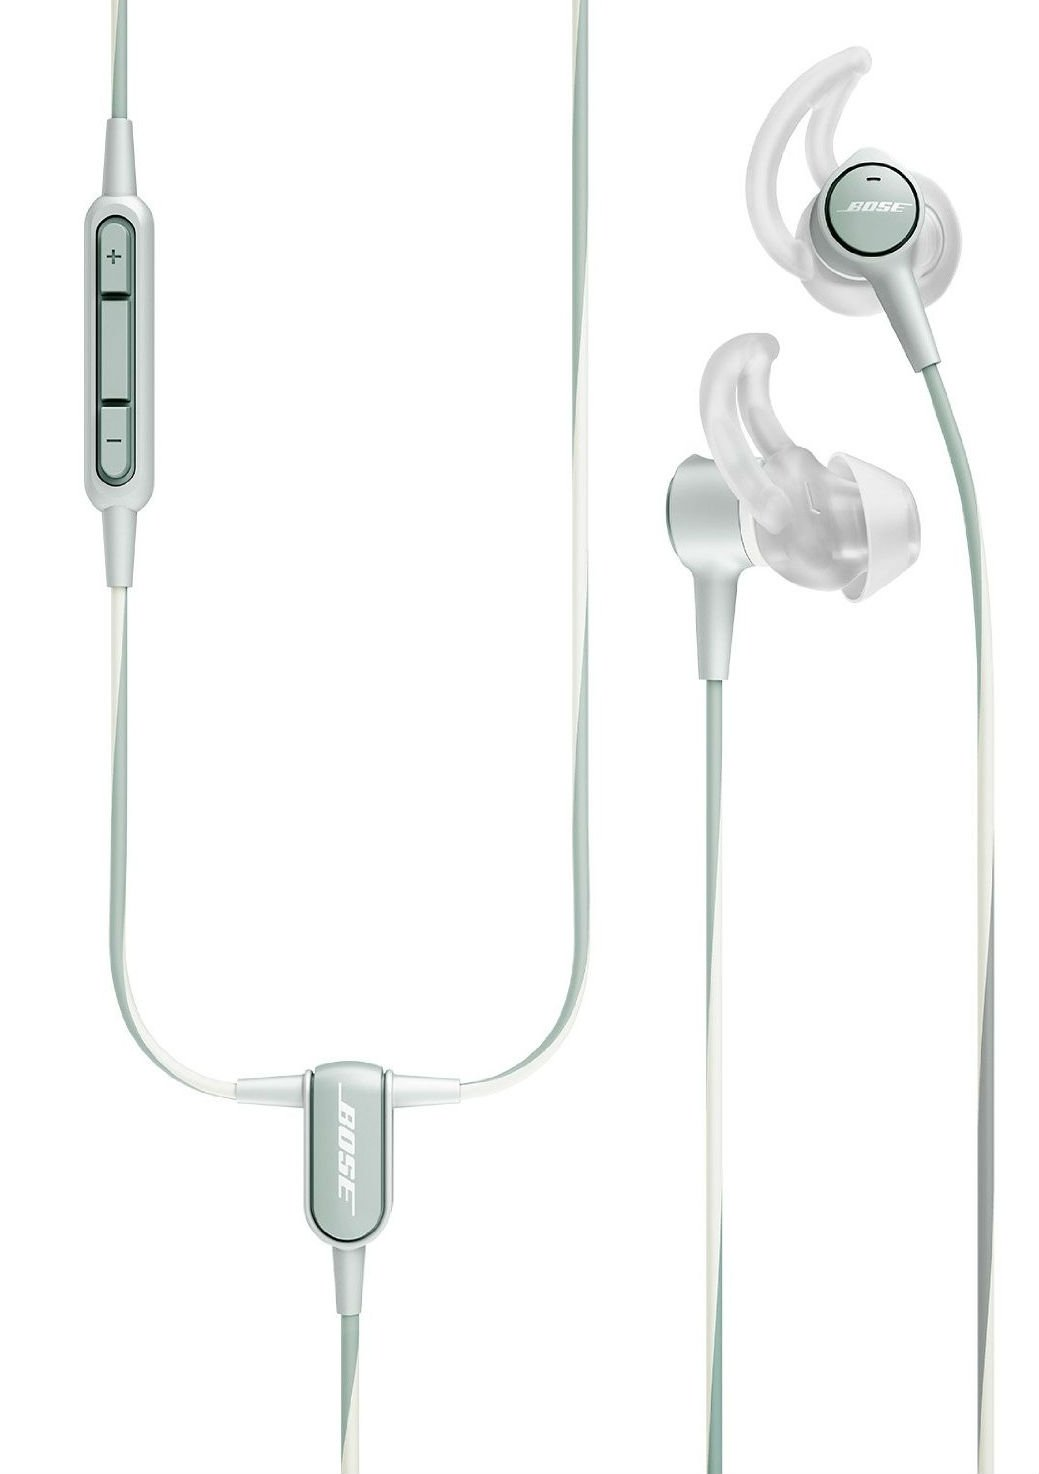 BOSE SoundTrue in-ear MFI - White, картинка 2